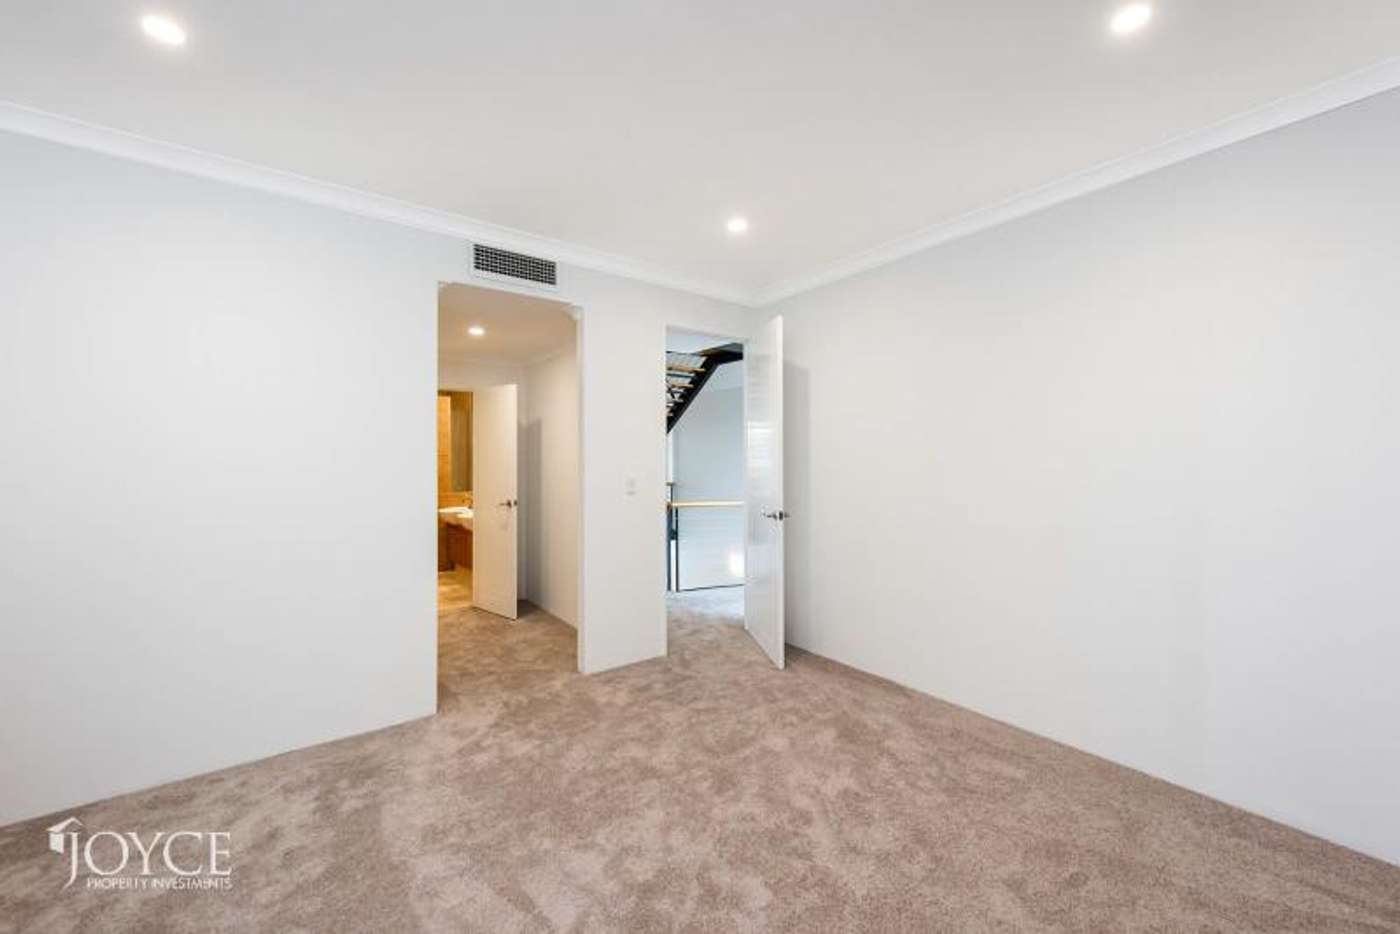 Seventh view of Homely house listing, 27 Tidewater Way, Ascot WA 6104